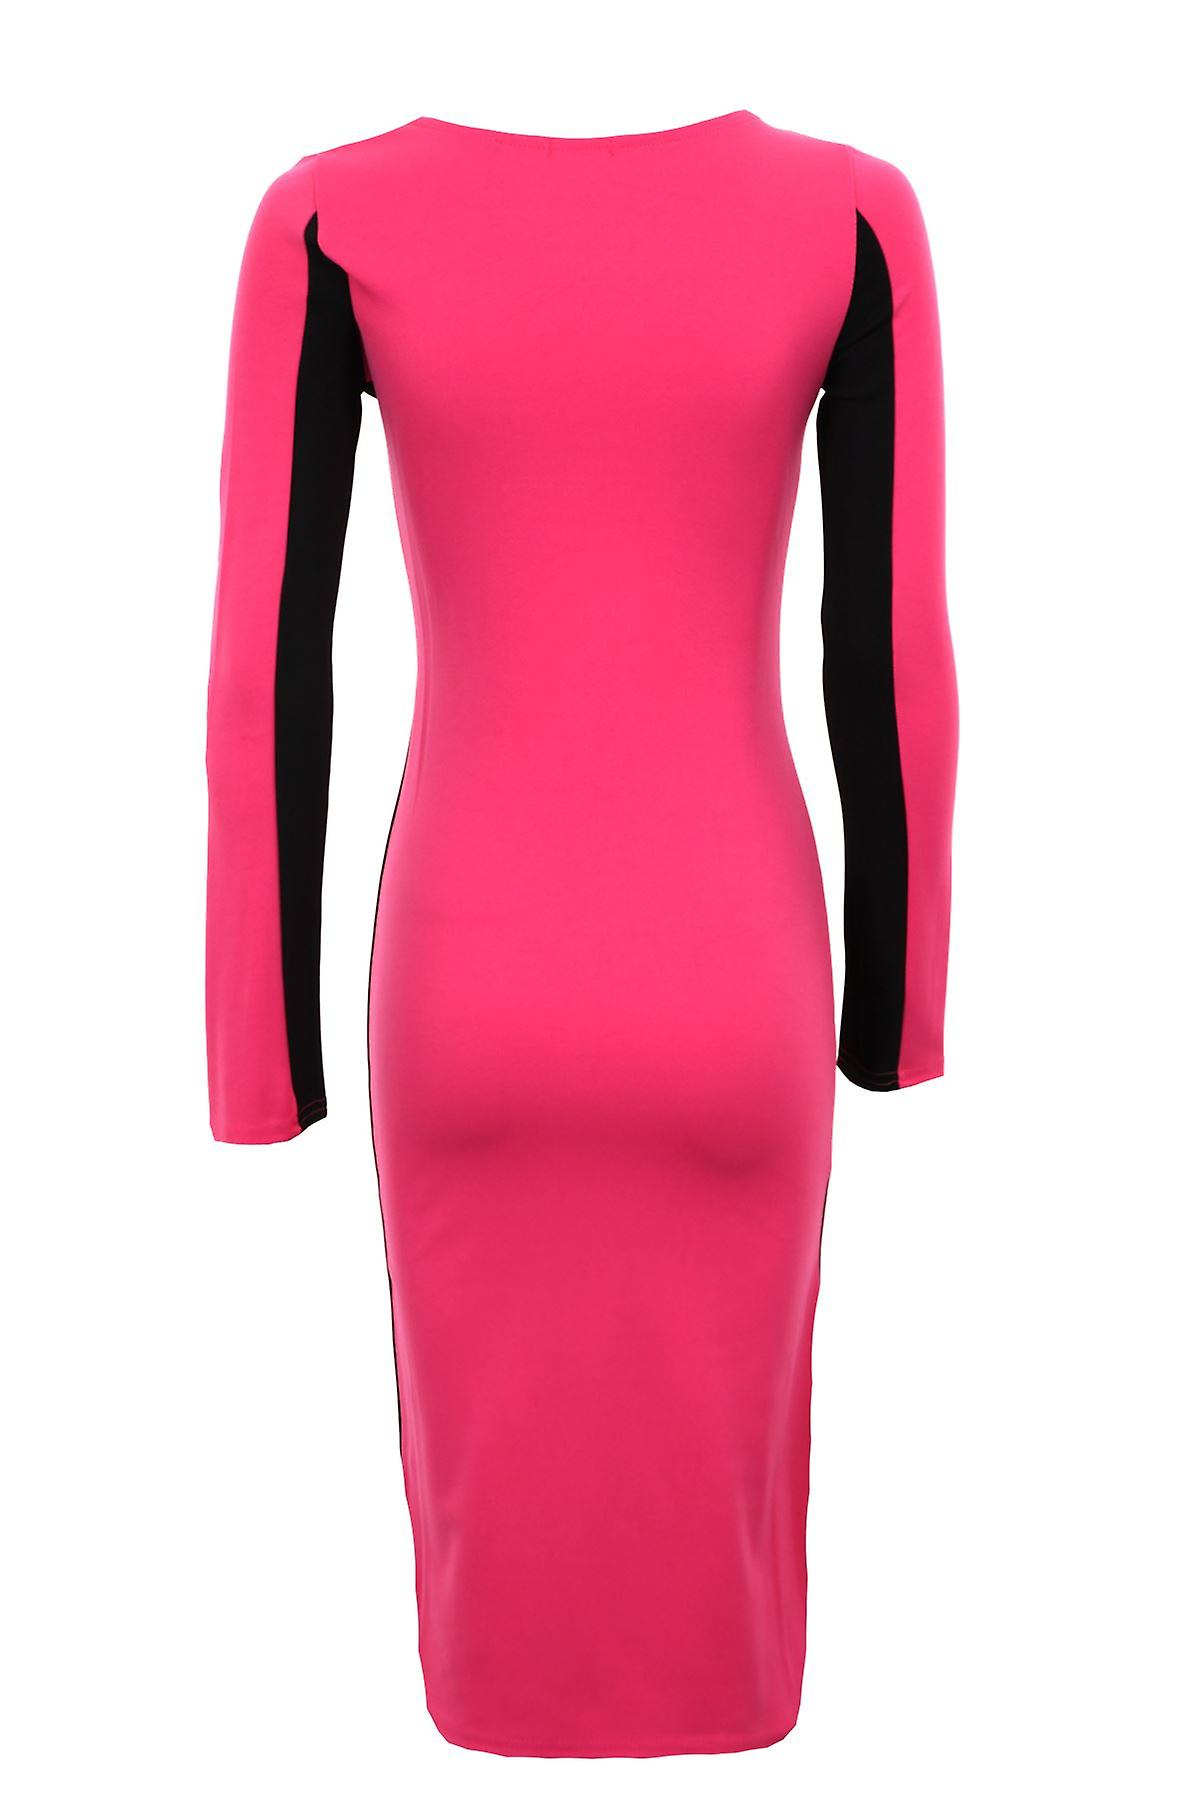 Ladies Long Sleeve Side Contrast Optical Illusion Bodycon Slimming Effect Women's Dress